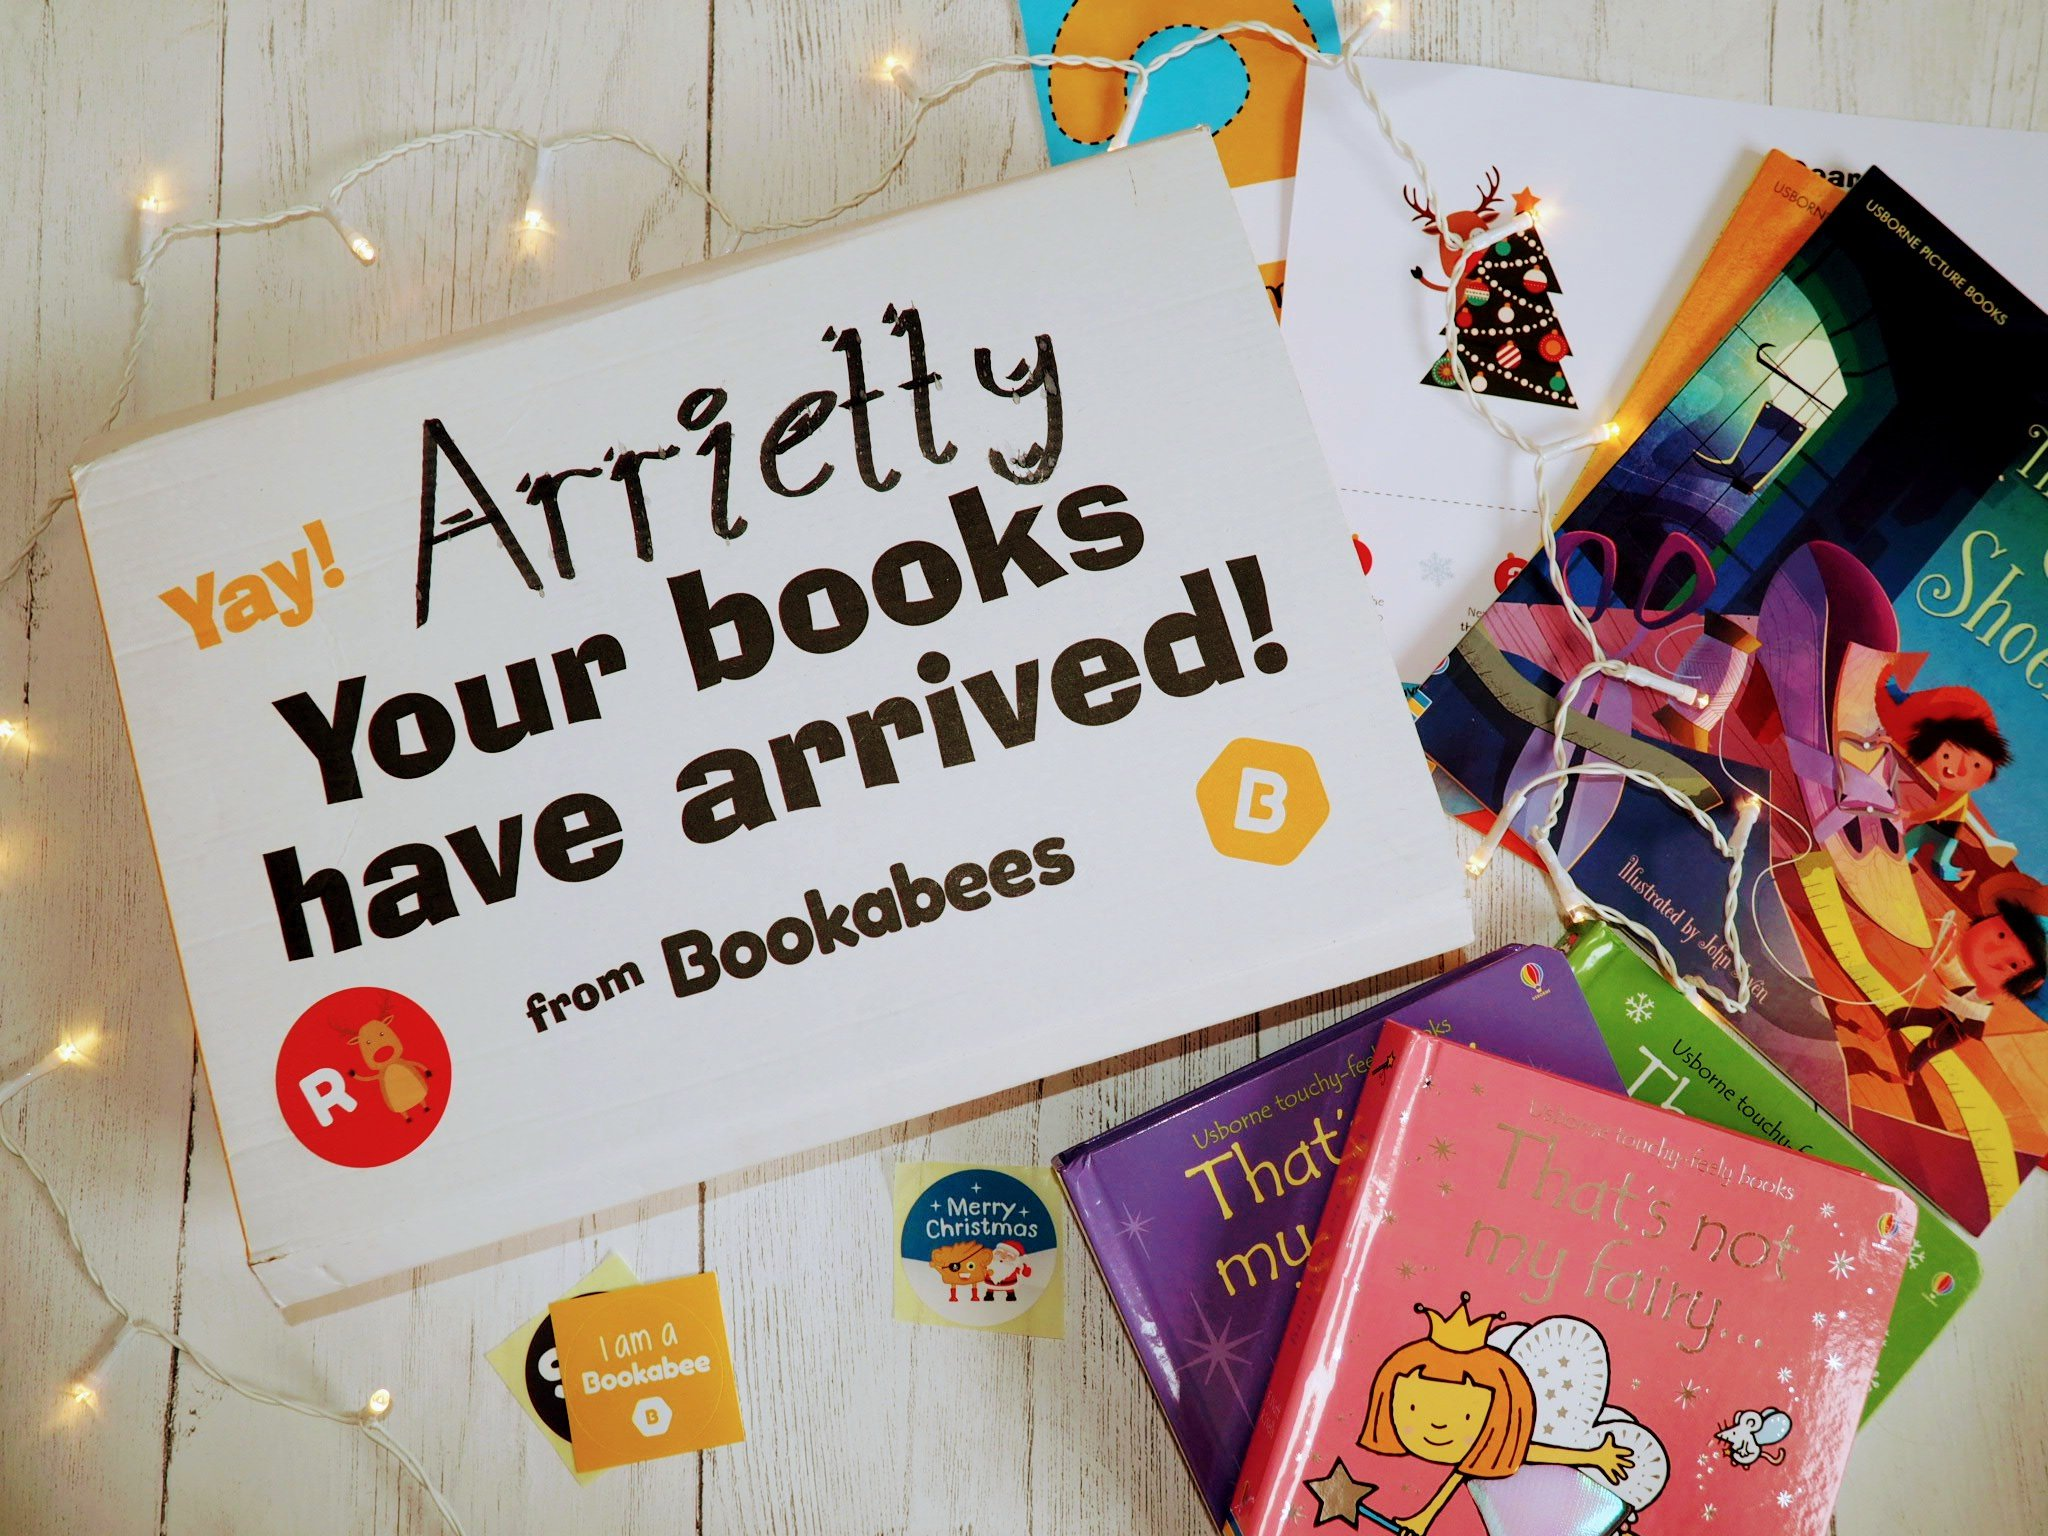 Bookabees book package